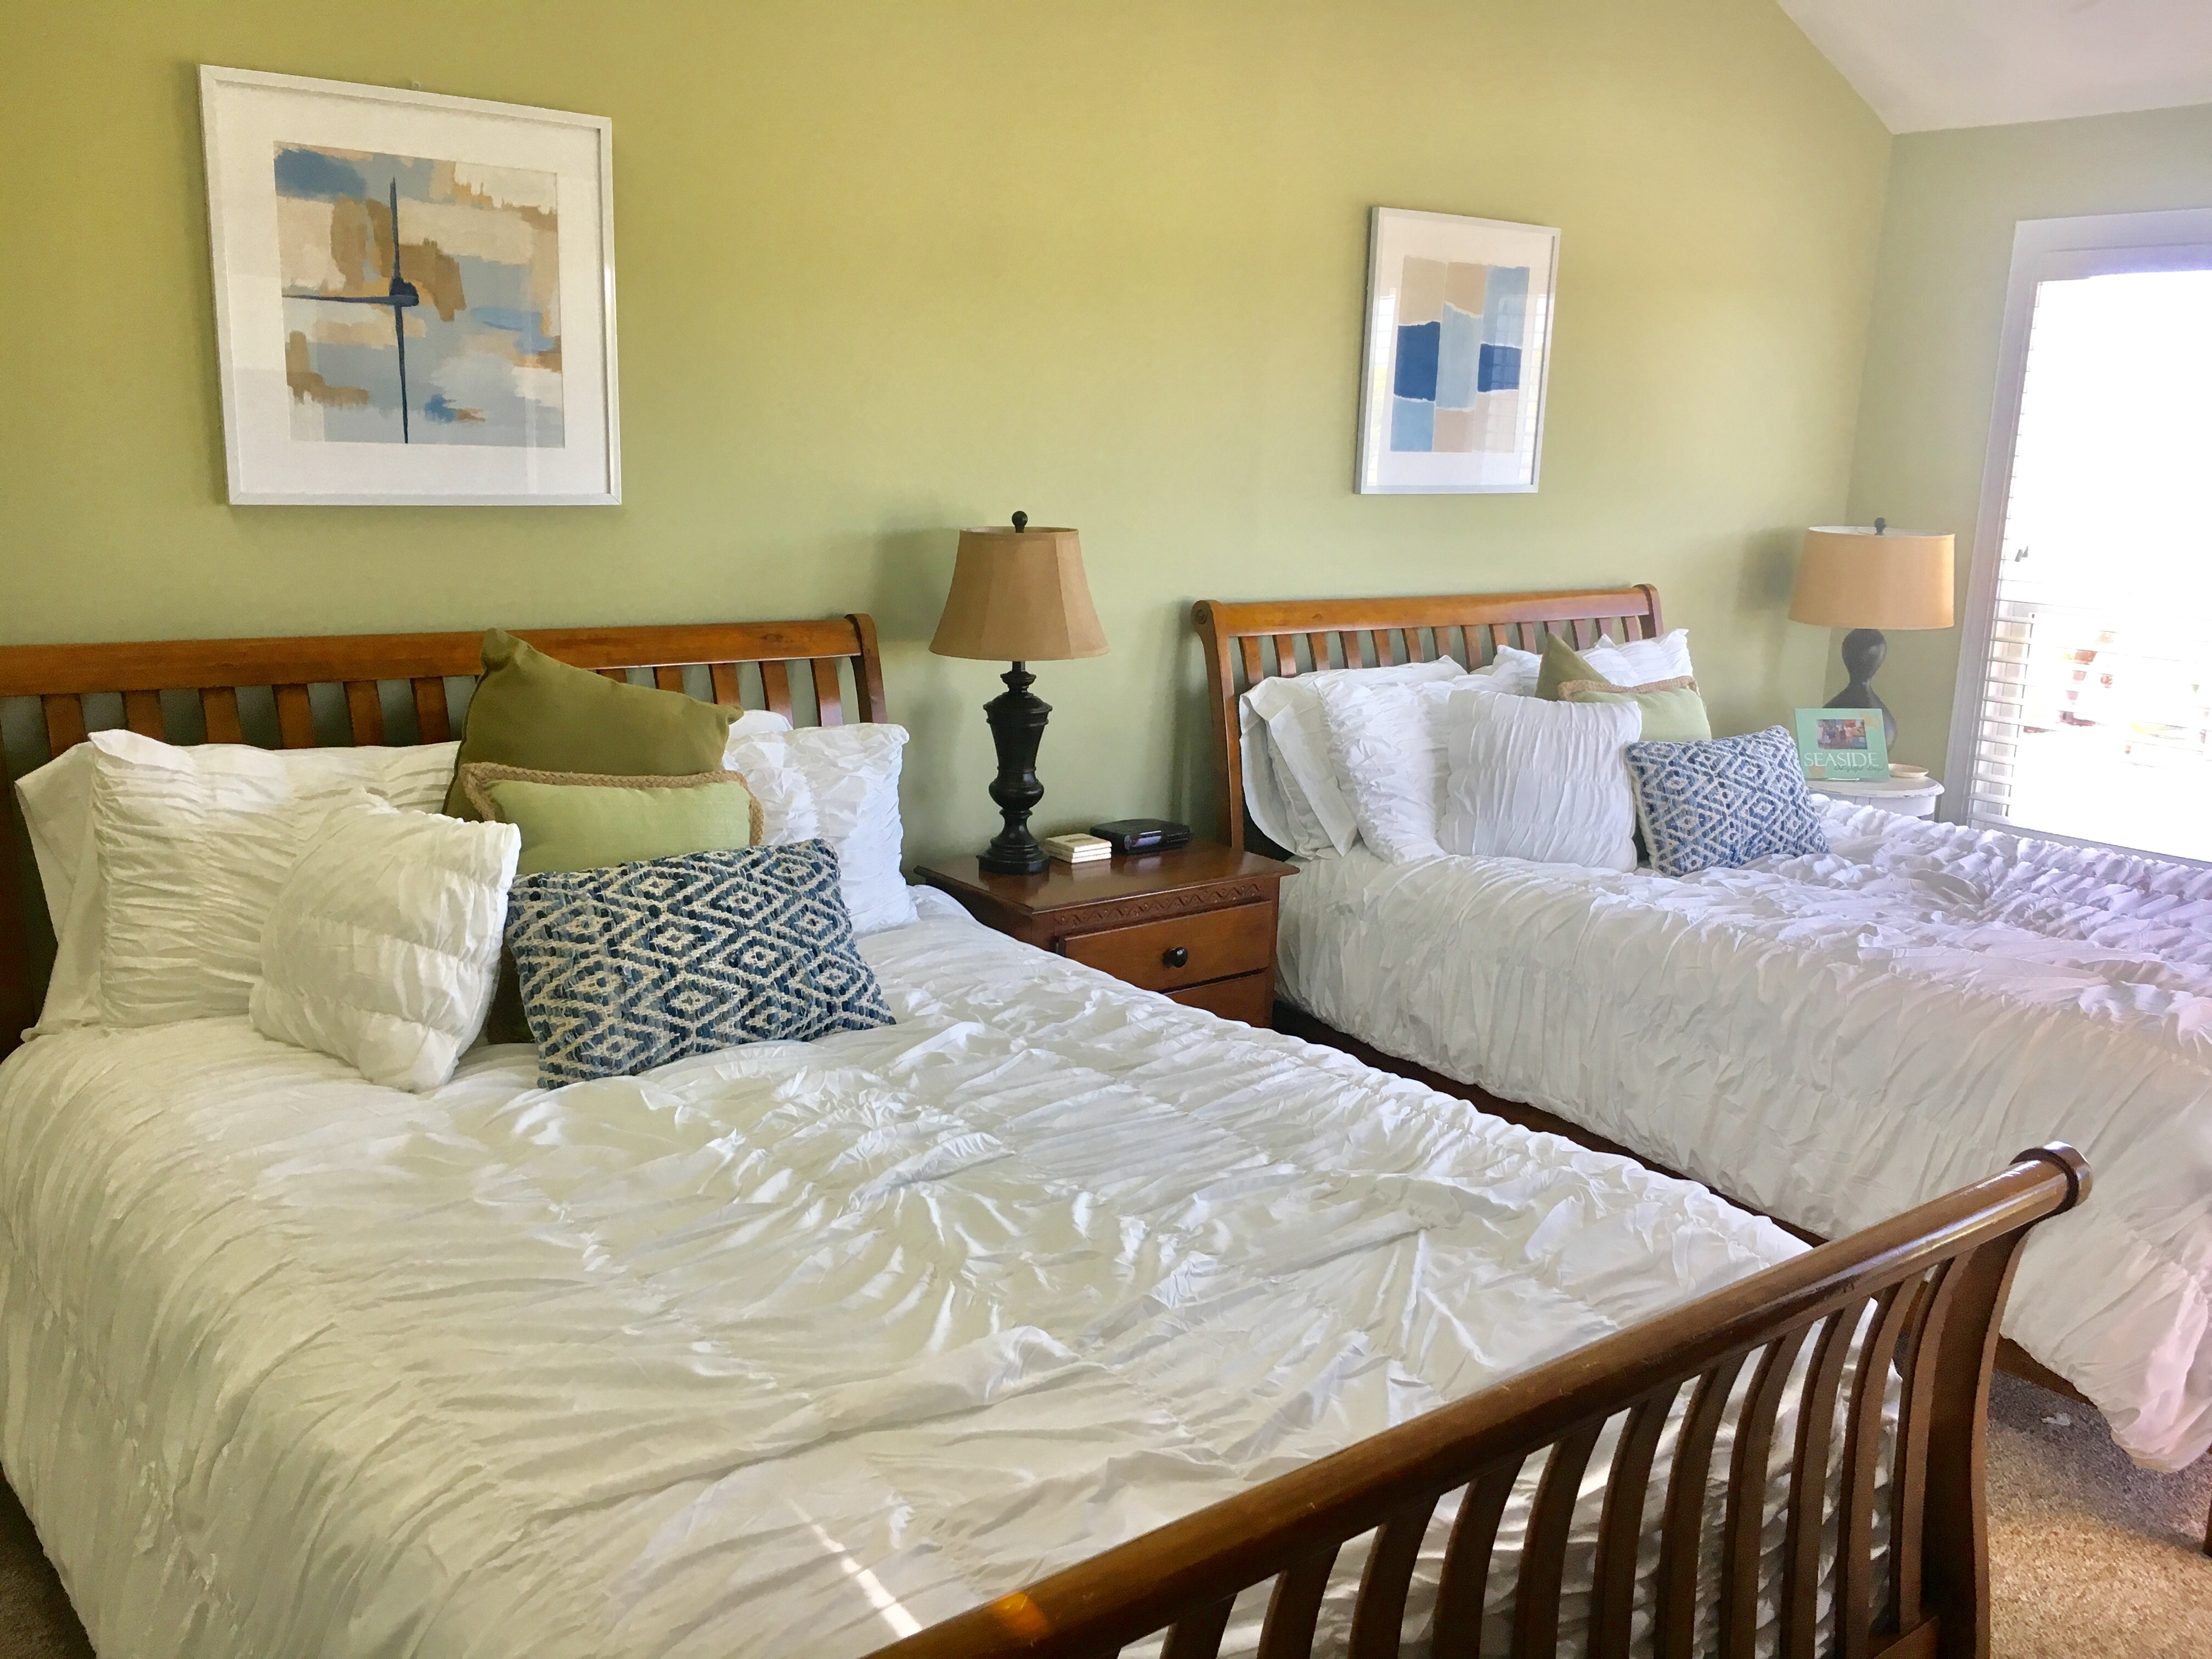 The master bedroom has two queen beds and a large HDTV.